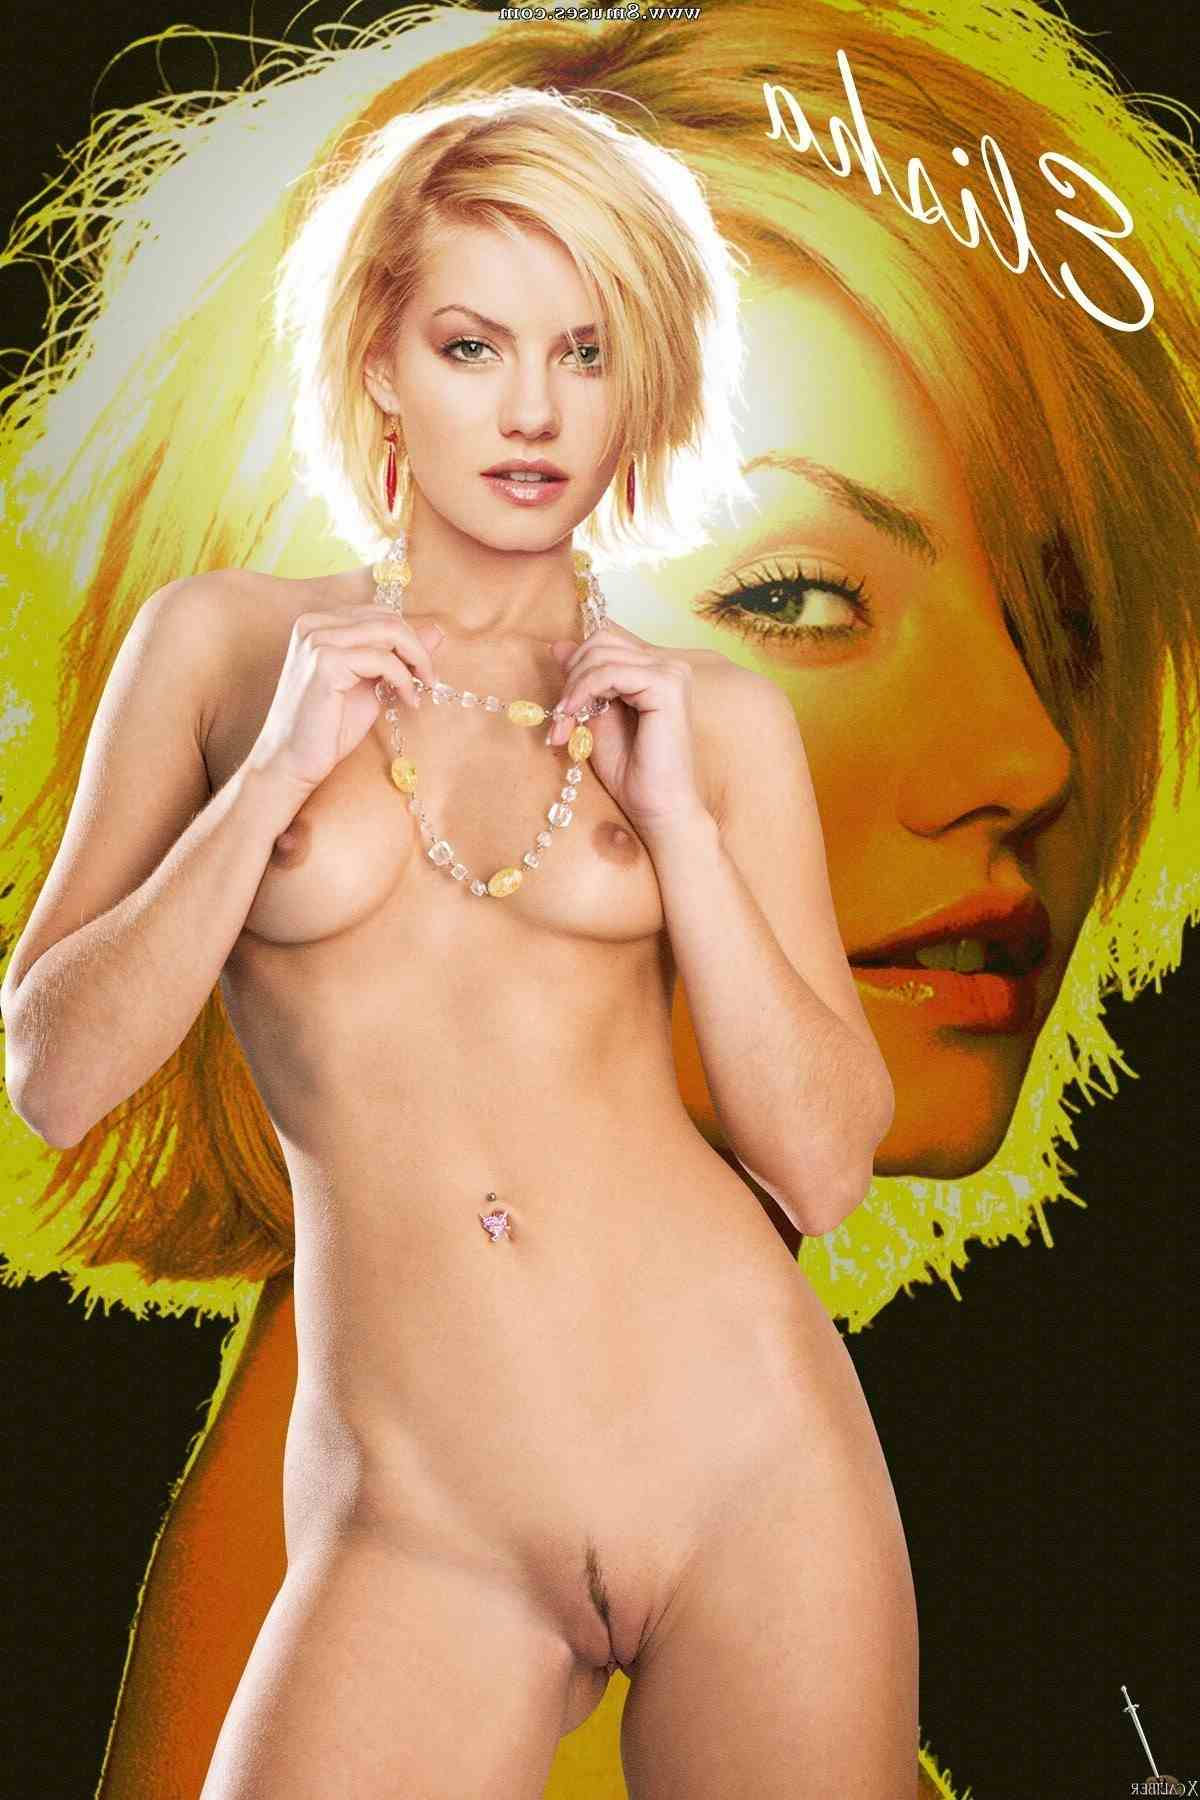 Fake-Celebrities-Sex-Pictures/Elisha-Cuthbert Elisha_Cuthbert__8muses_-_Sex_and_Porn_Comics_299.jpg